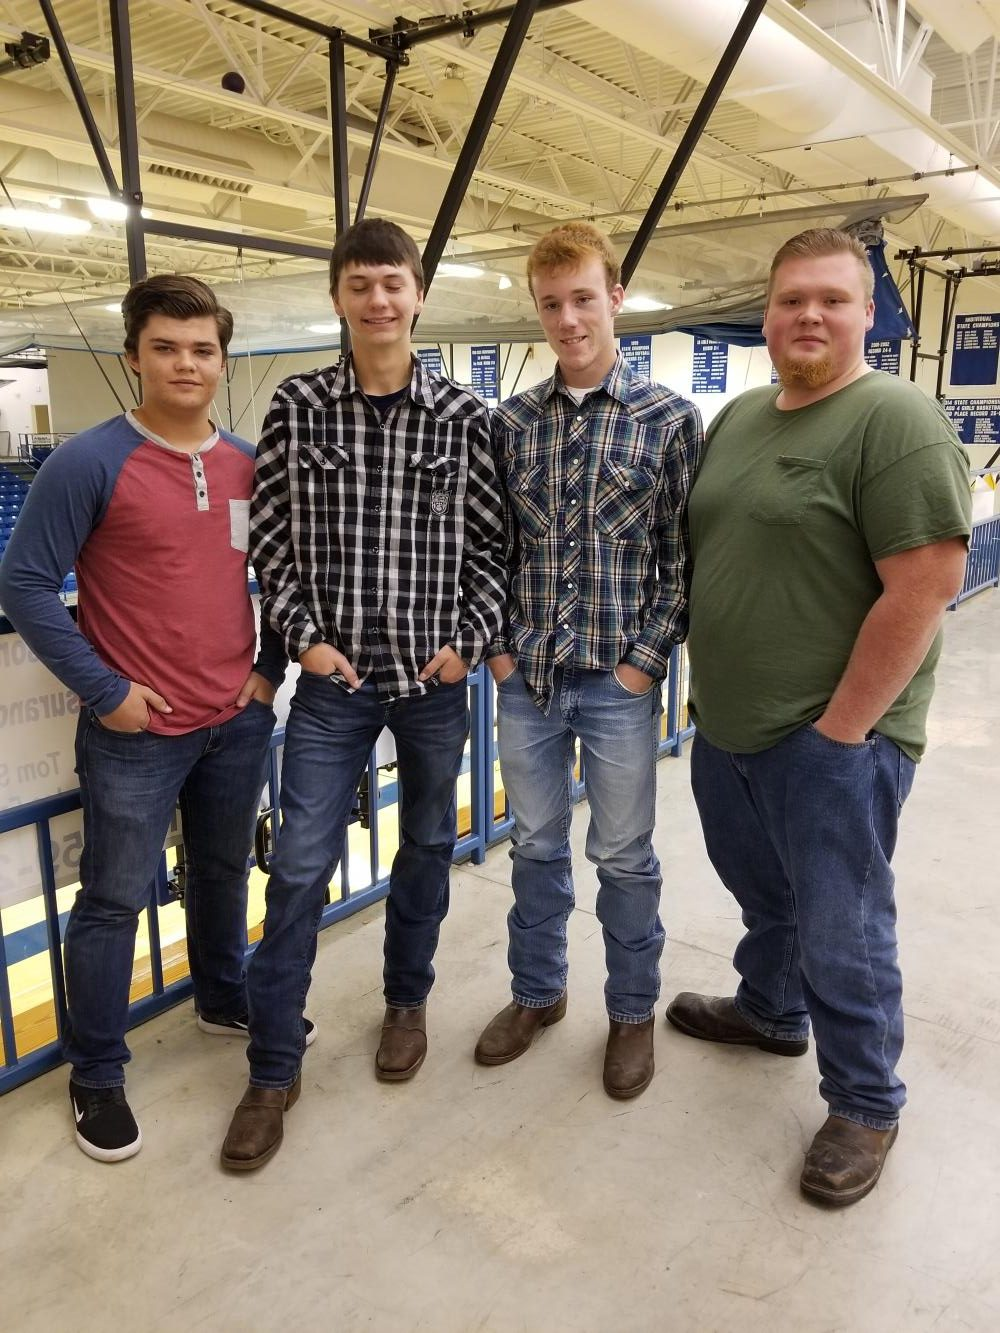 Marshfield High School students, (left to right) Ryan Mendes, Zach Dishman, Ira Cole Marlin, and Thomas Chaplin waited in line to retake their school picture.